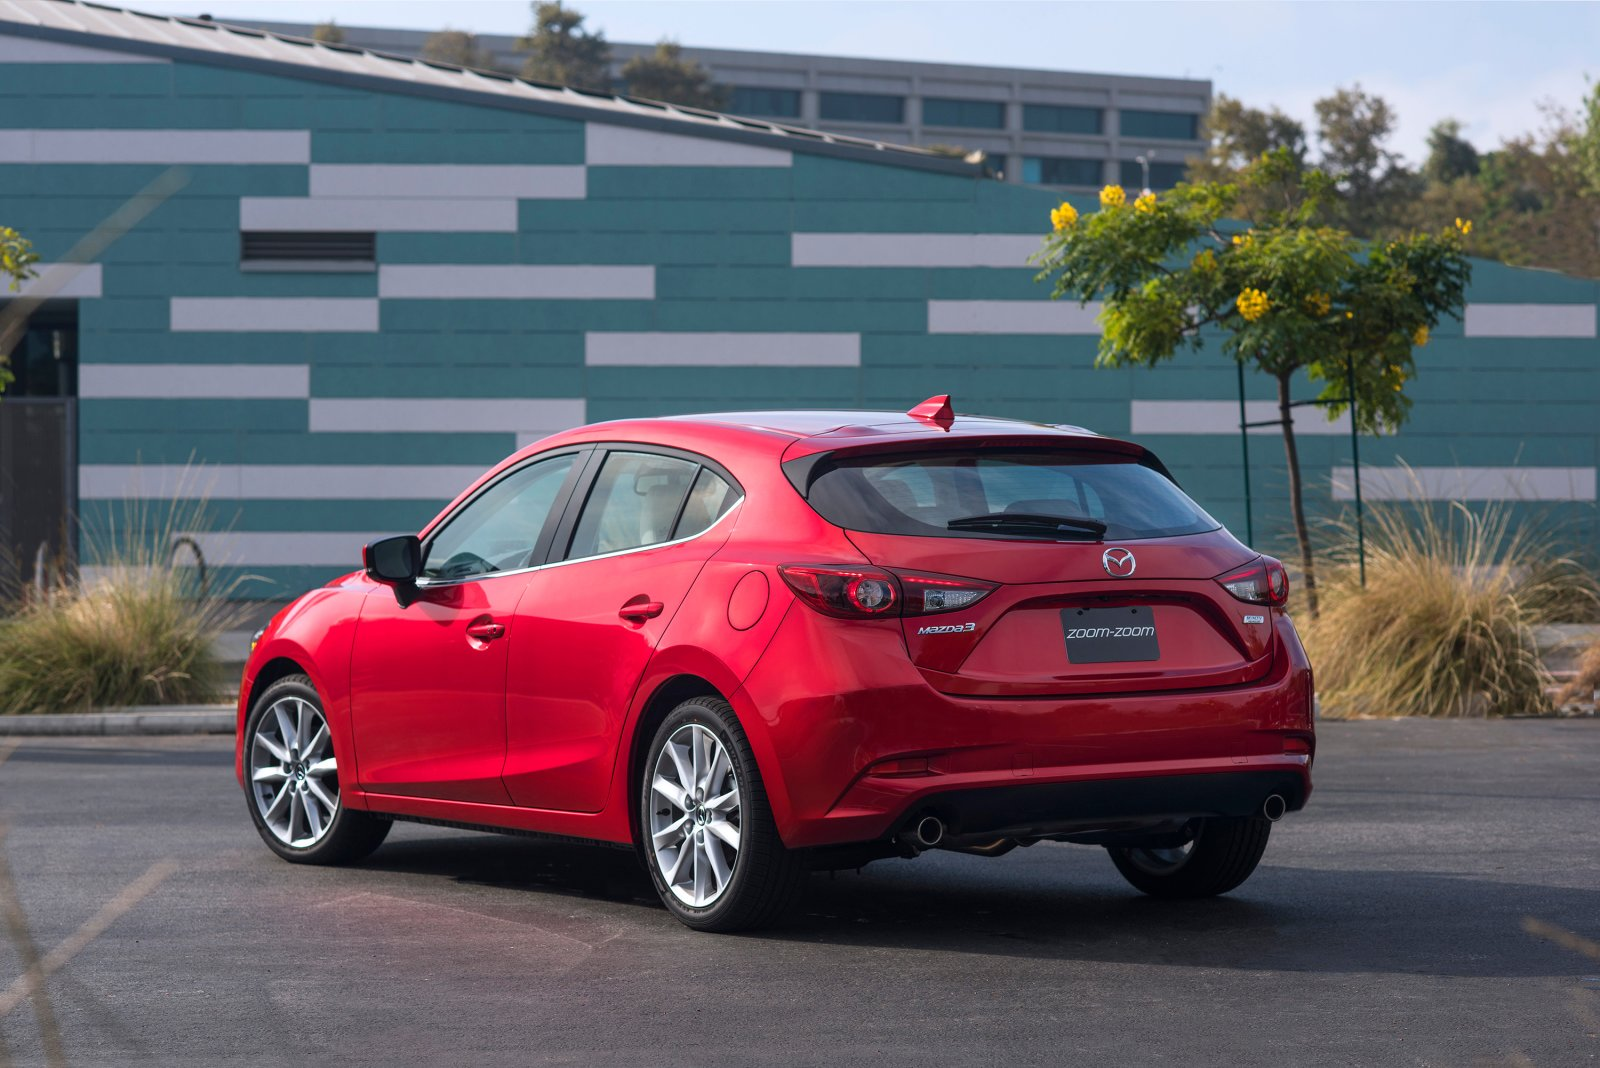 When Considering New Mazda Models, Trust Our Team Of Hartford, CT Mazda  Dealers To Direct You In The Right Direction. From Whatu0027s Under The Hood,  ...